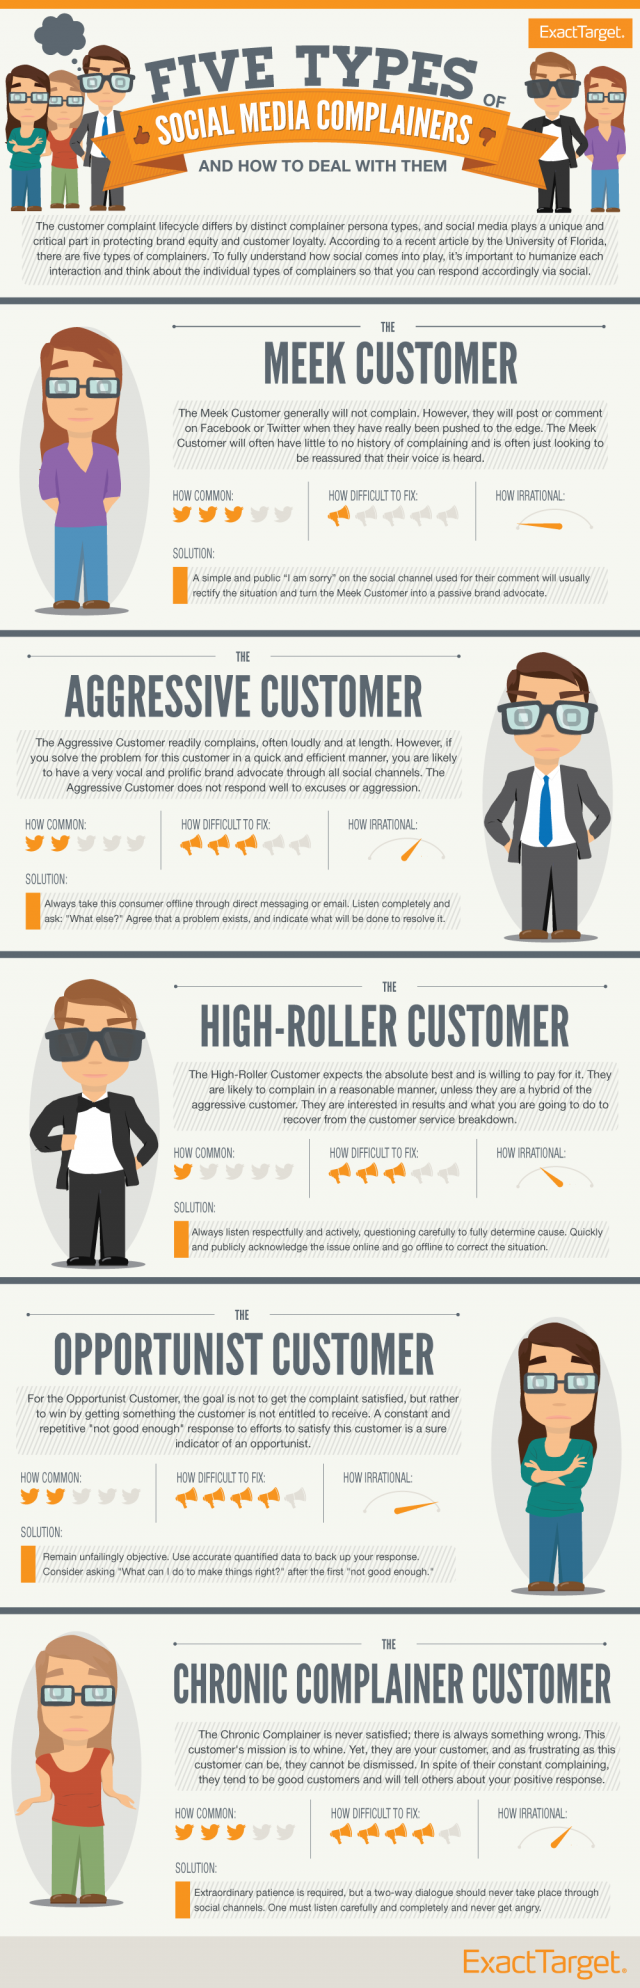 infographie-client-mecontents-raleurs-relation-service-social-customer-service-infographic